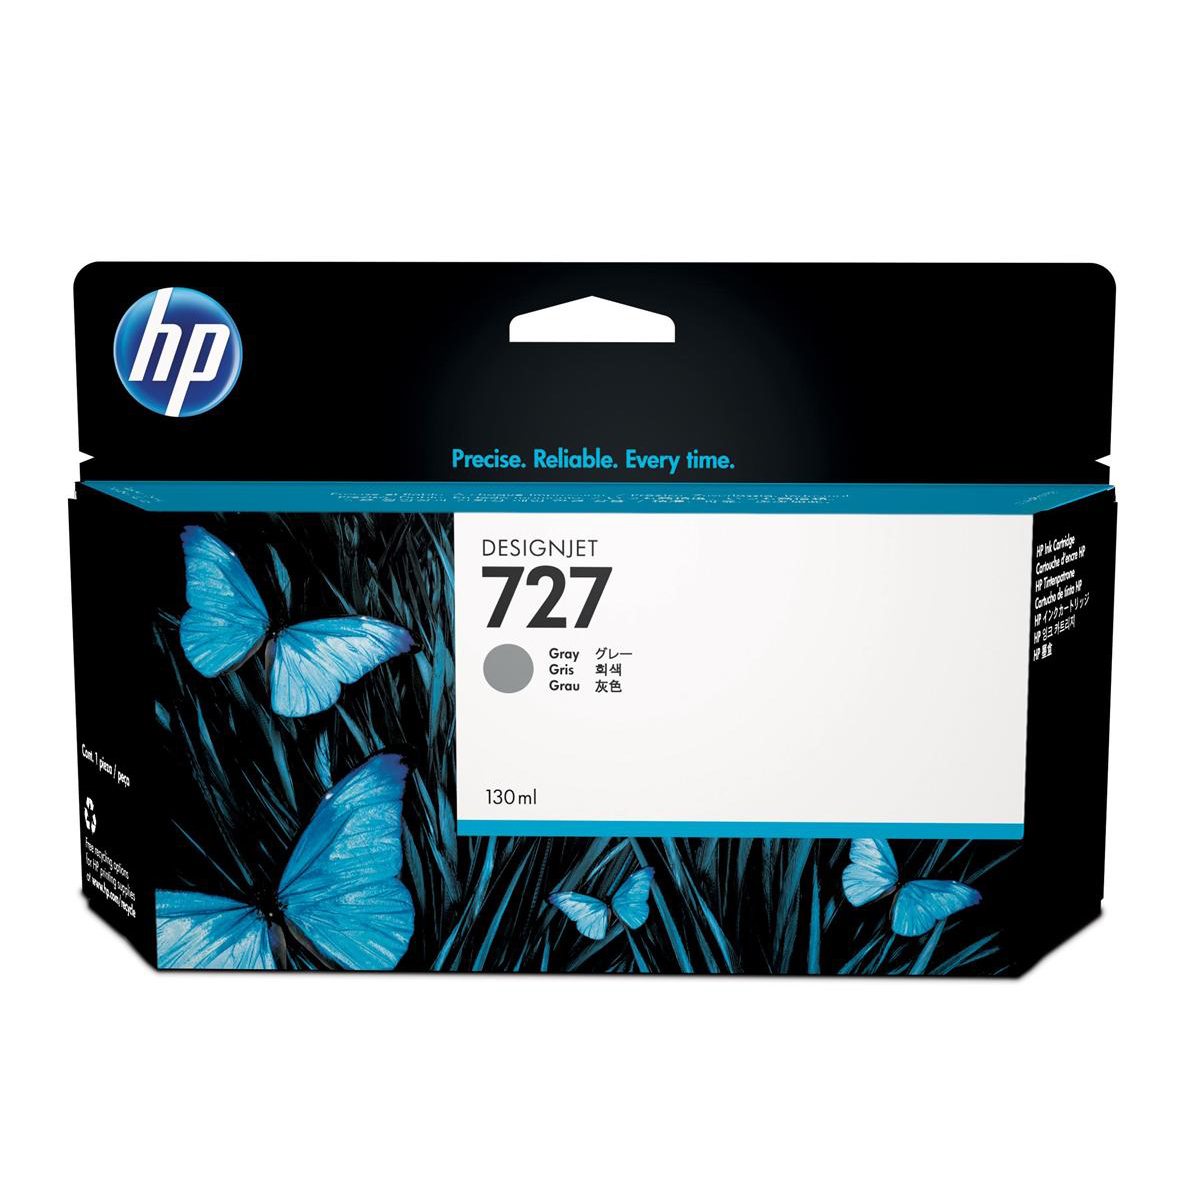 Hewlett Packard [HP] No.727 Inkjet Cartridge 130ml Grey Ref B3P24A